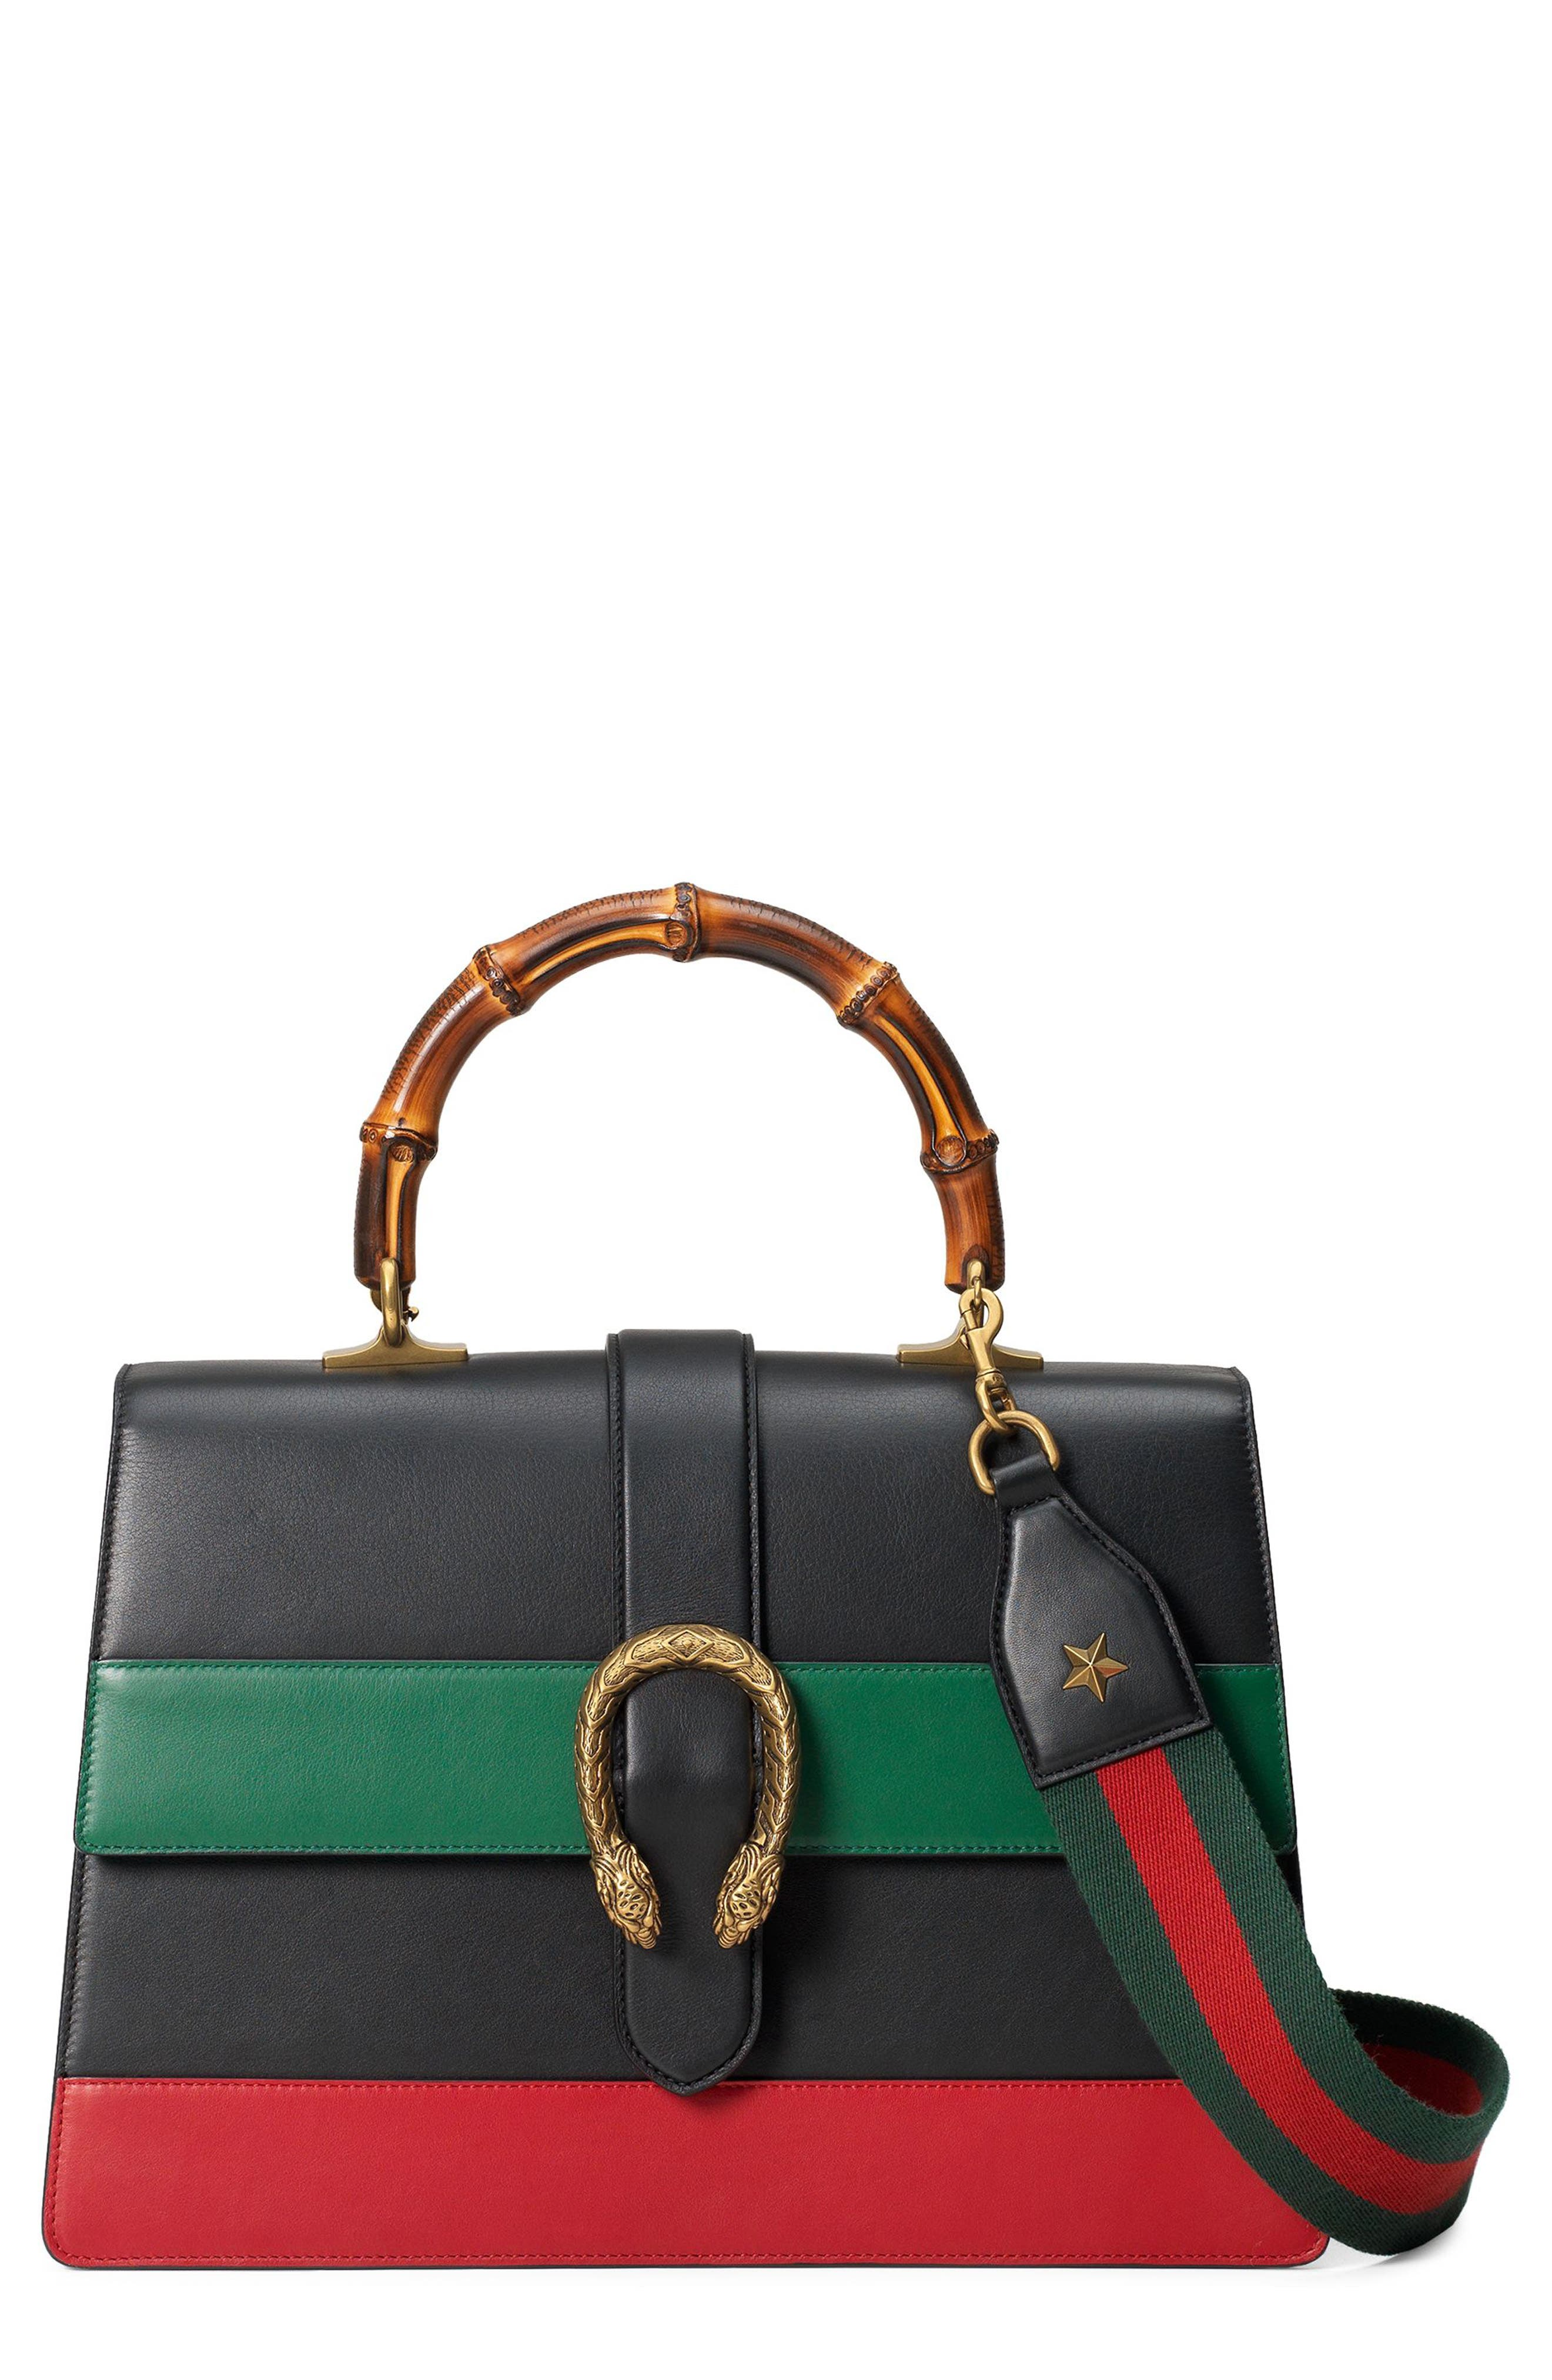 Main Image - Gucci Large Dionysus Top Handle Leather Shoulder Bag